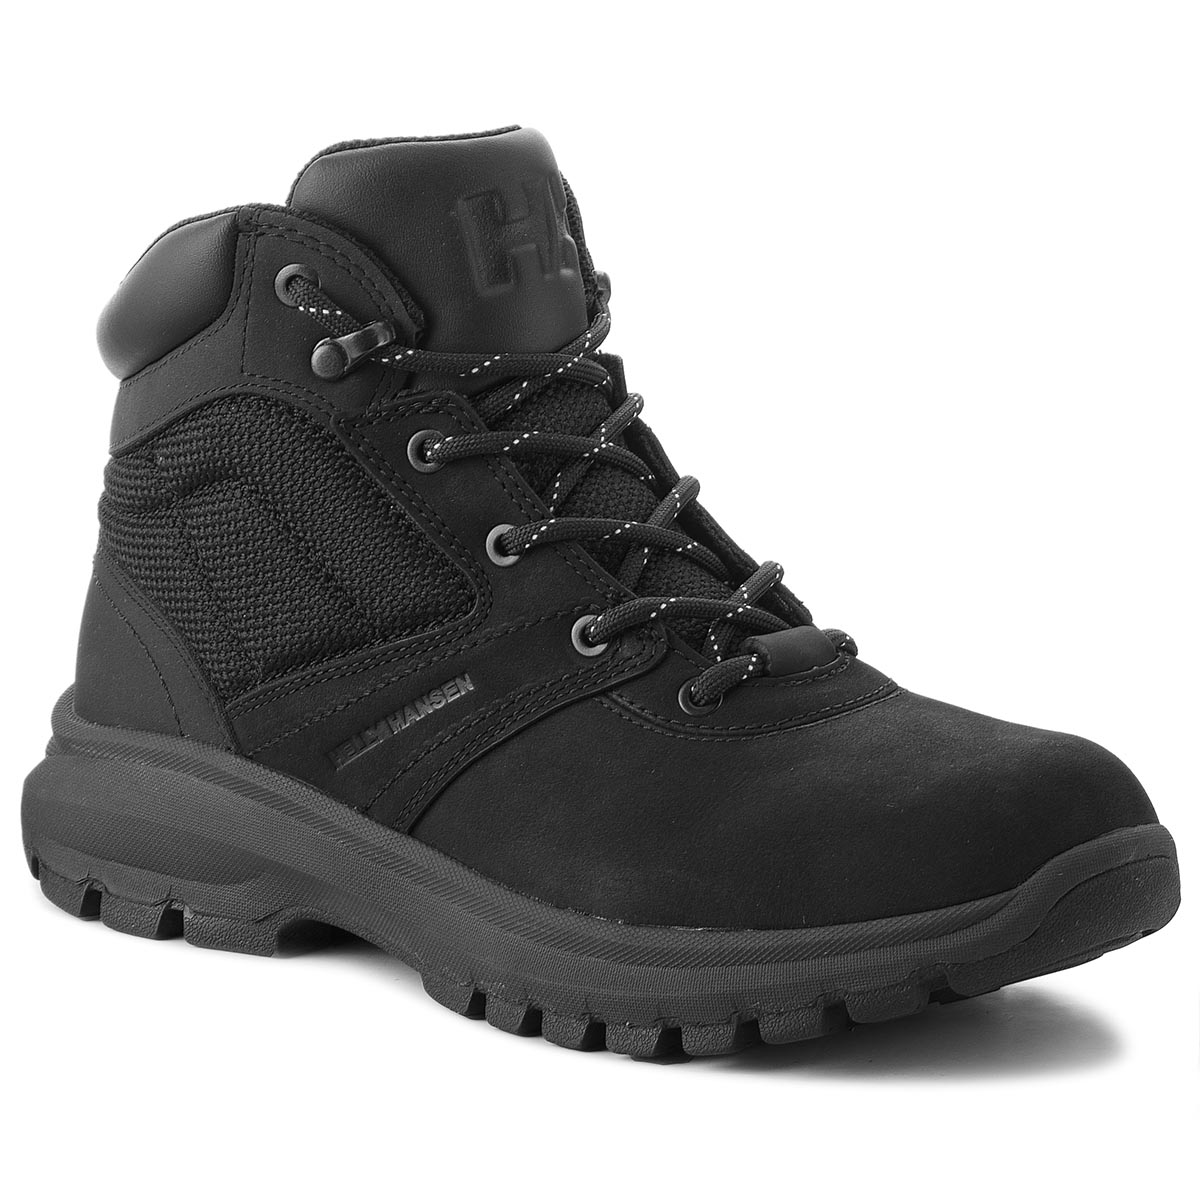 Trekkings Helly Hansen - Montreal V2 114-25.991 Jet Black/Jet Black imagine epantofi.ro 2021